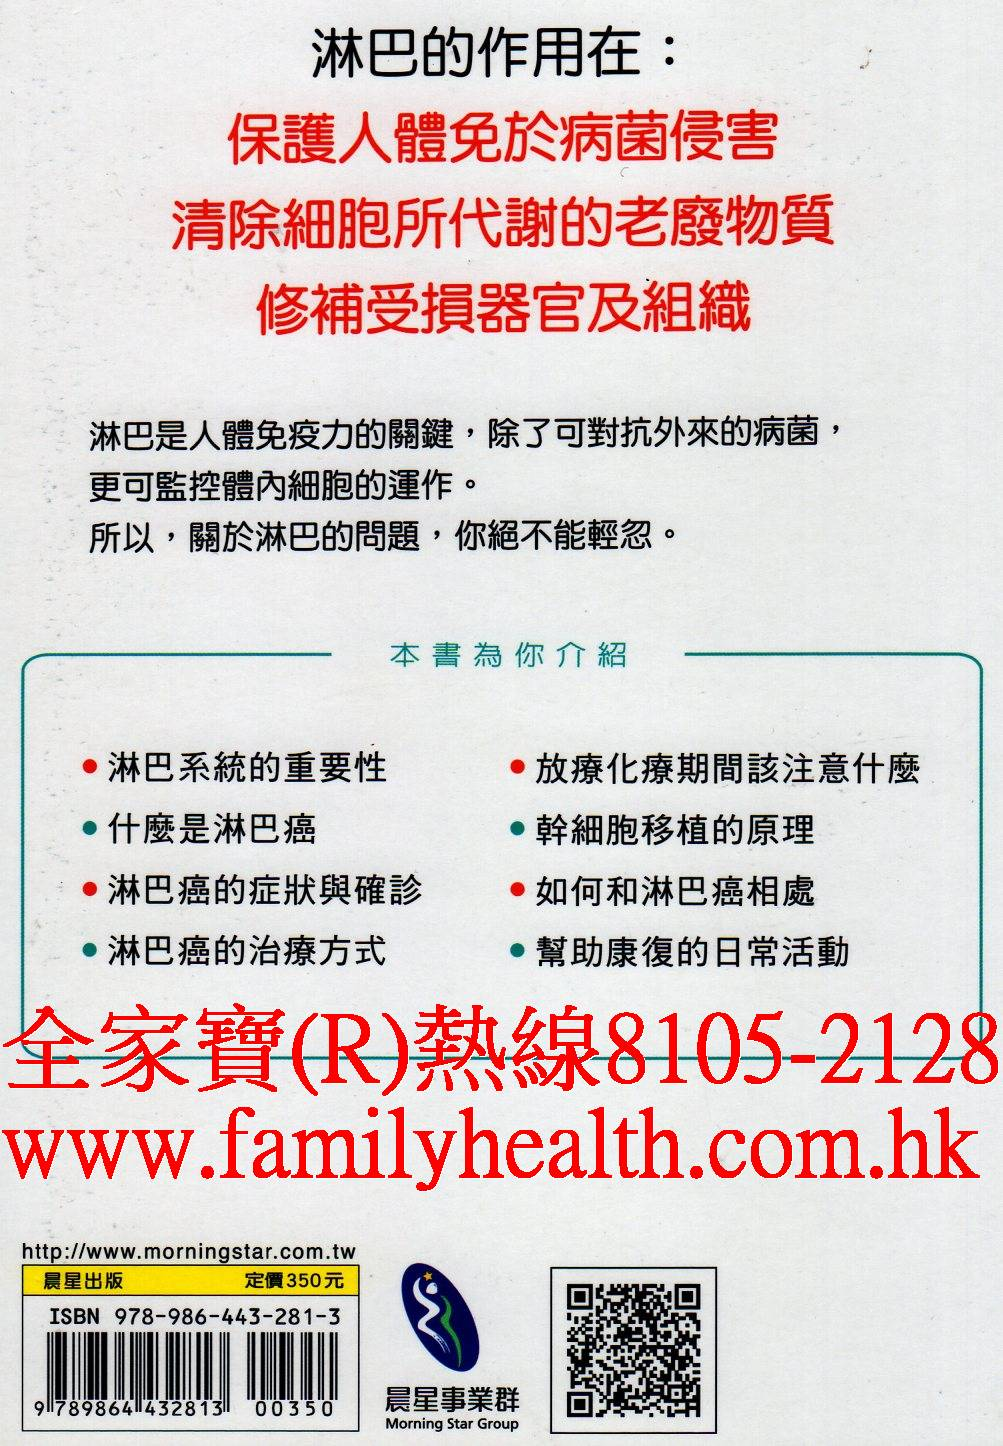 http://www.familyhealth.com.hk/files/full/1165_4.jpg